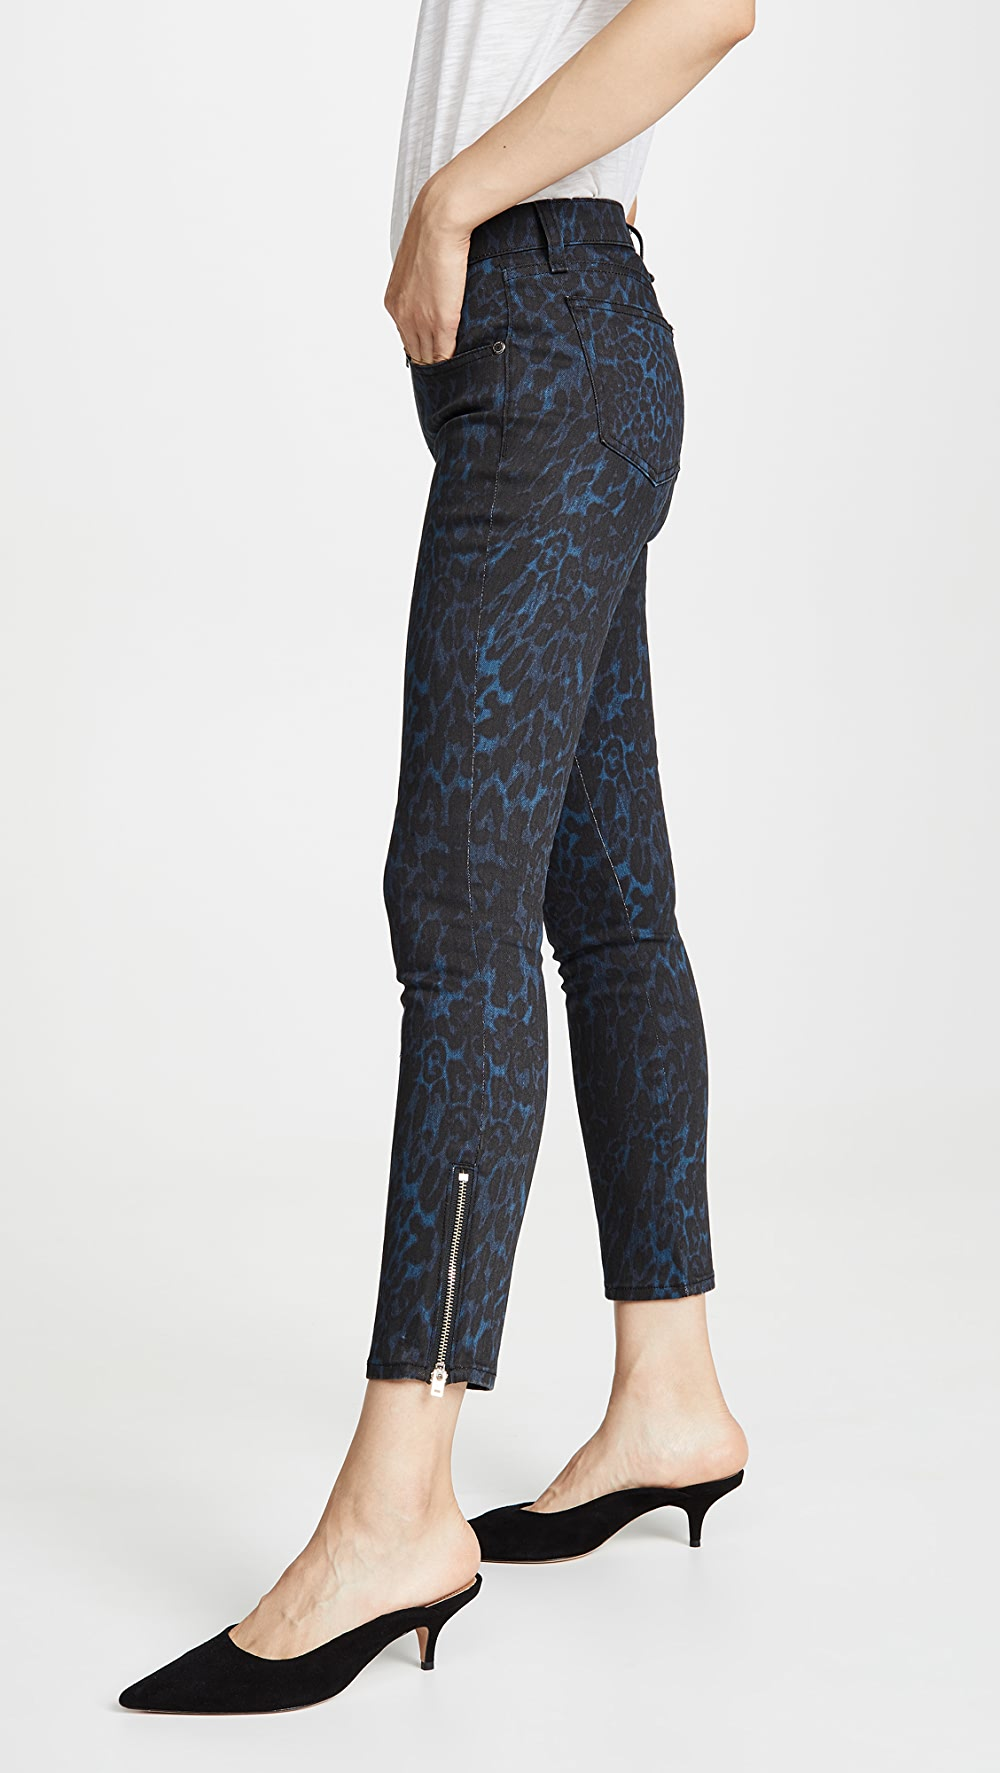 Adroit Ramy Brook - Printed Kate Jeans Extremely Efficient In Preserving Heat